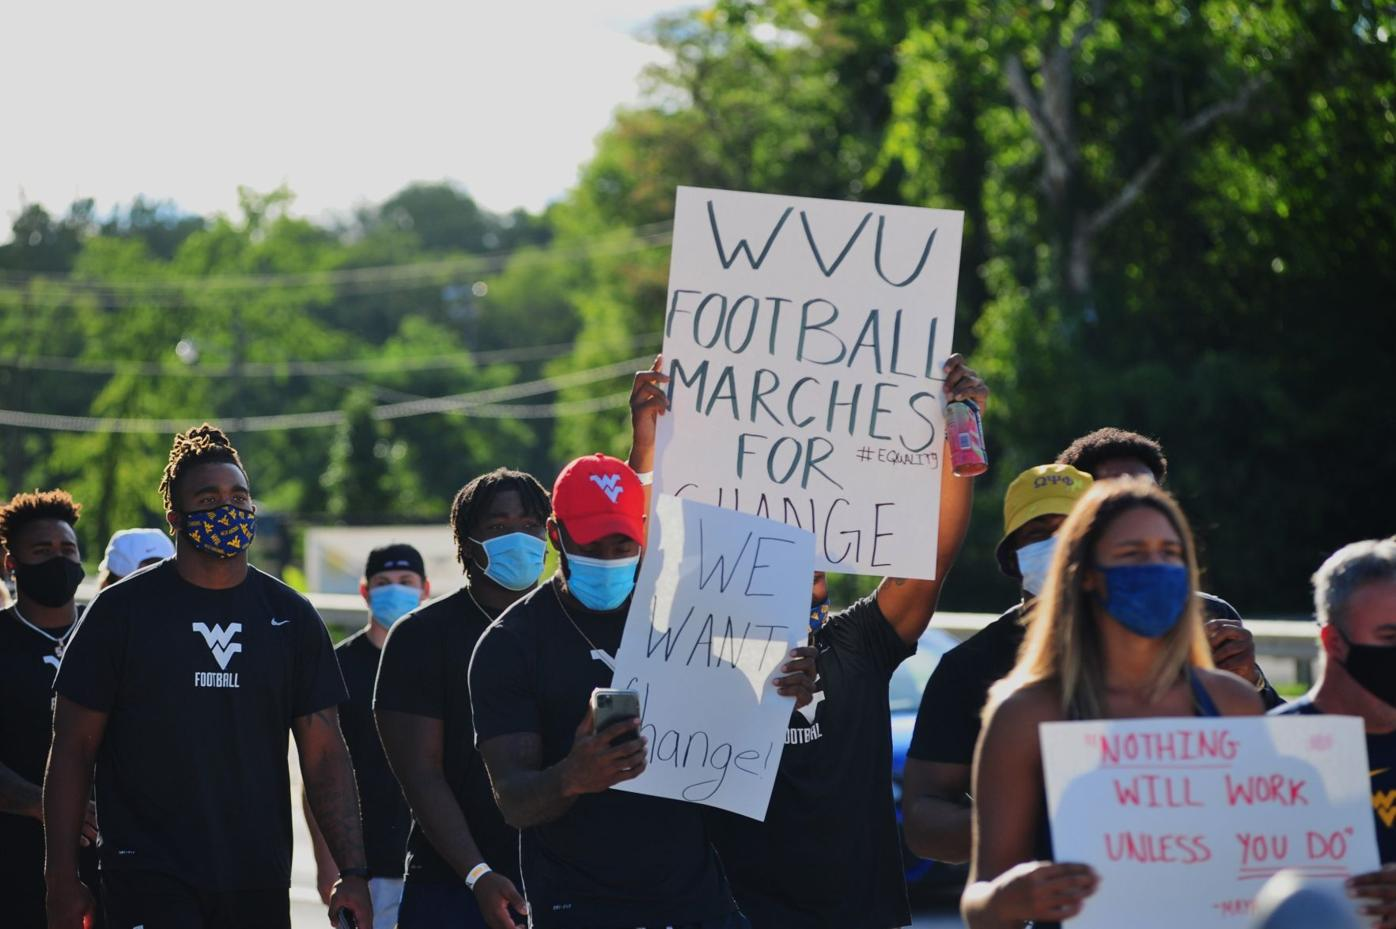 WVU football marches for unity and justice